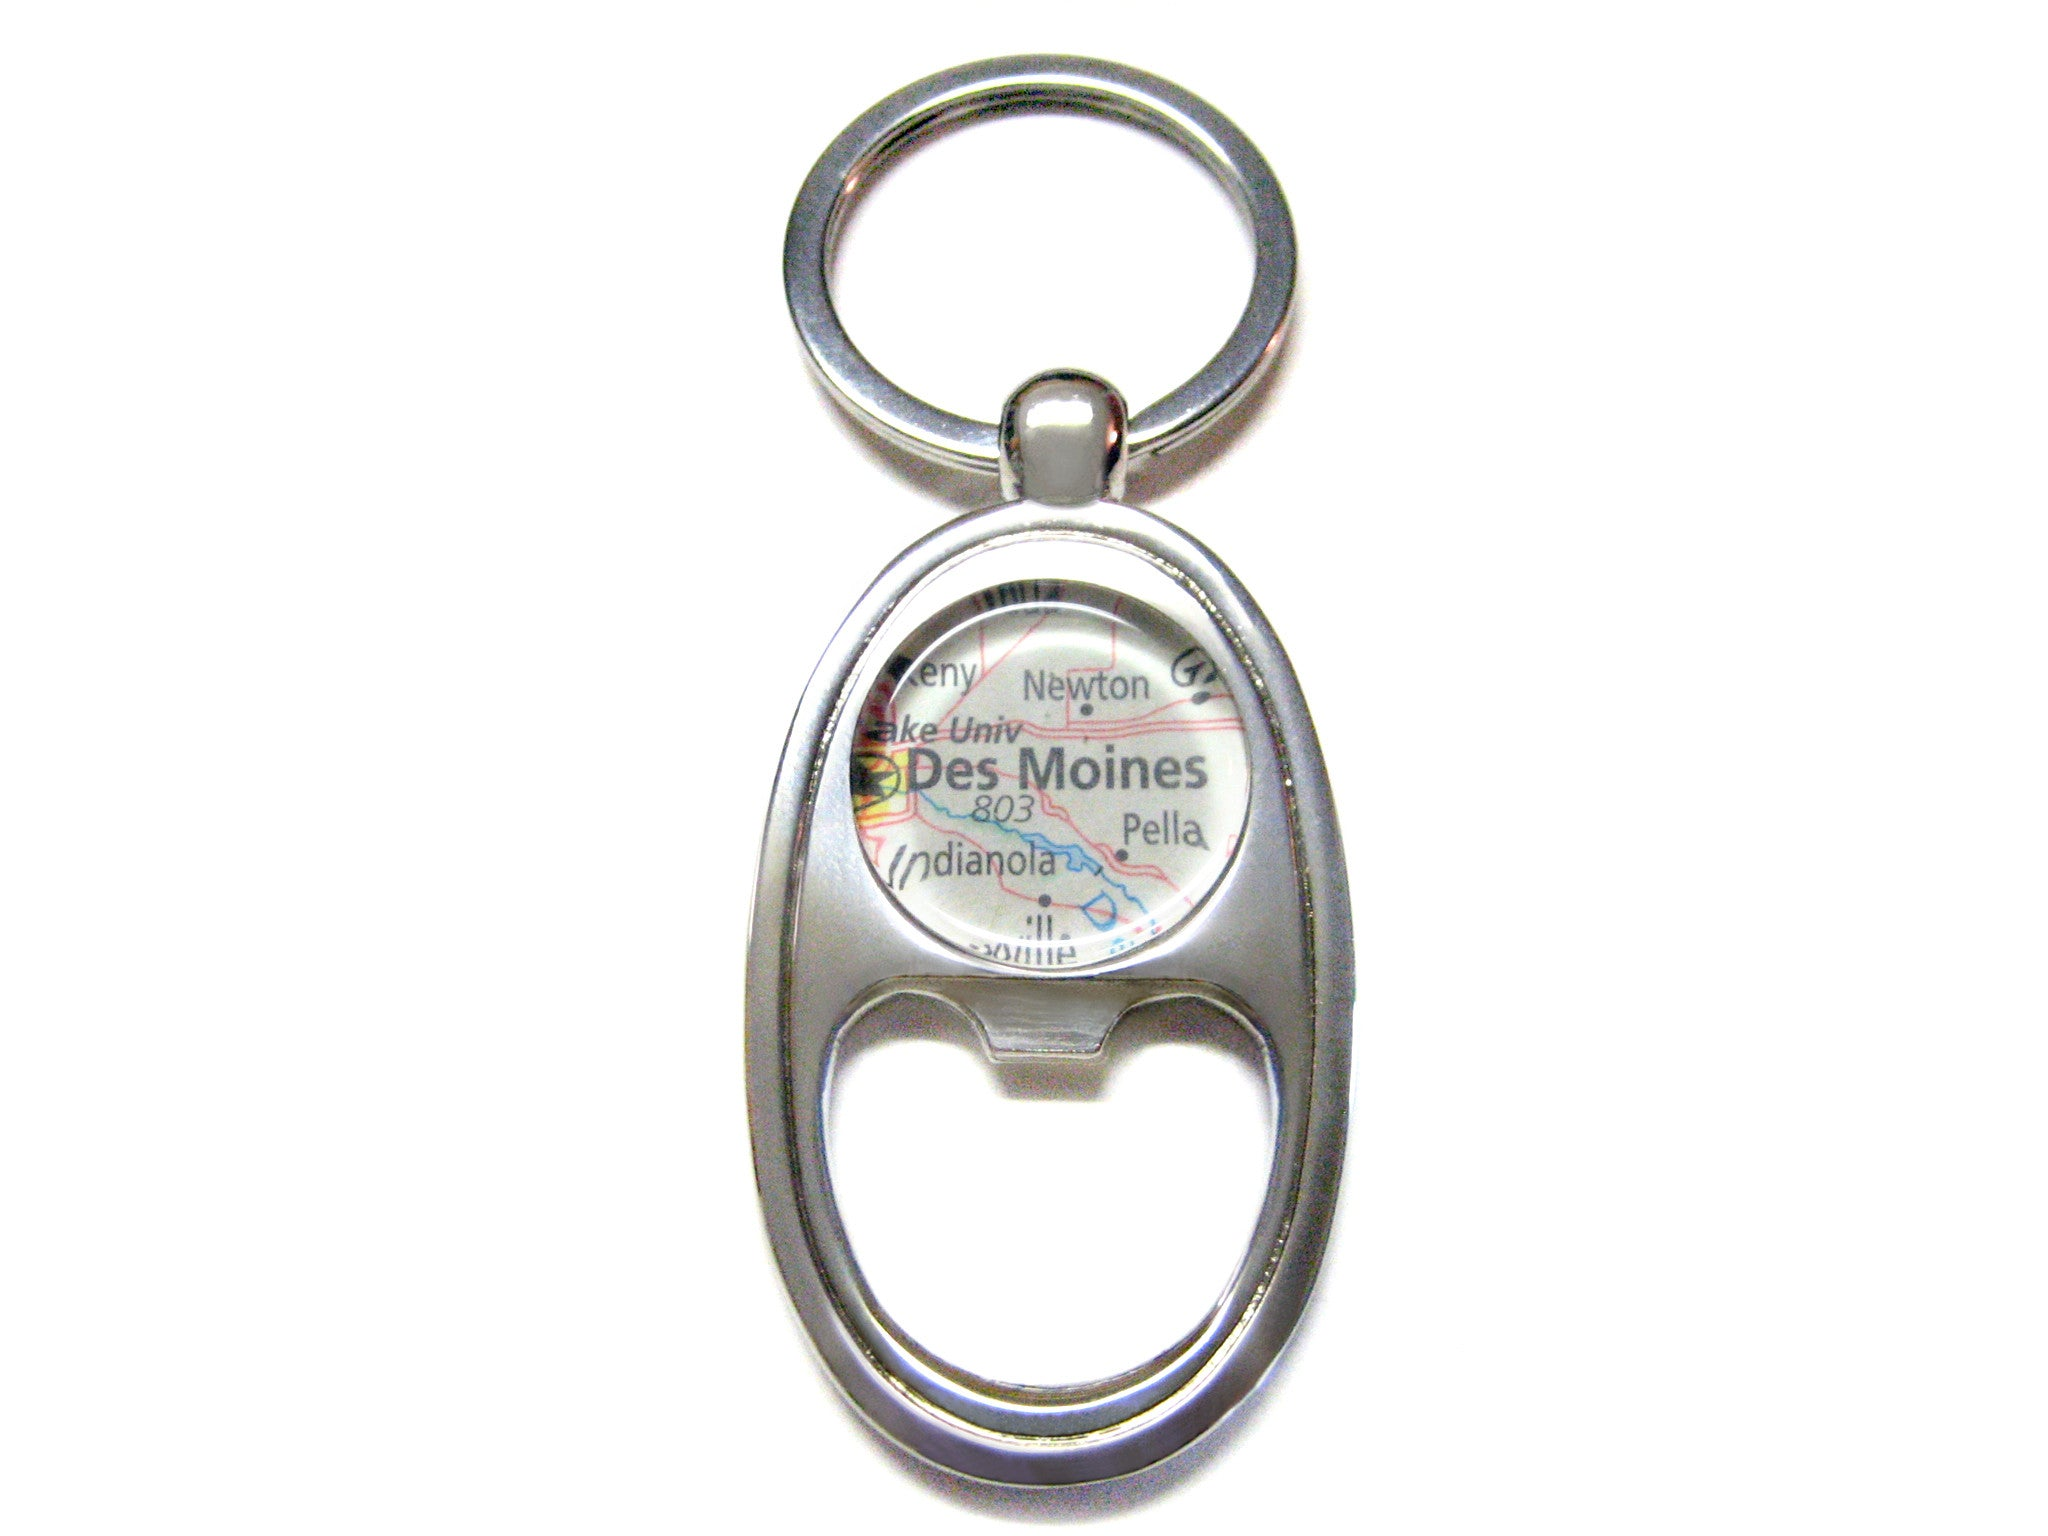 Des Moines Iowa Map Bottle Opener Key Chain